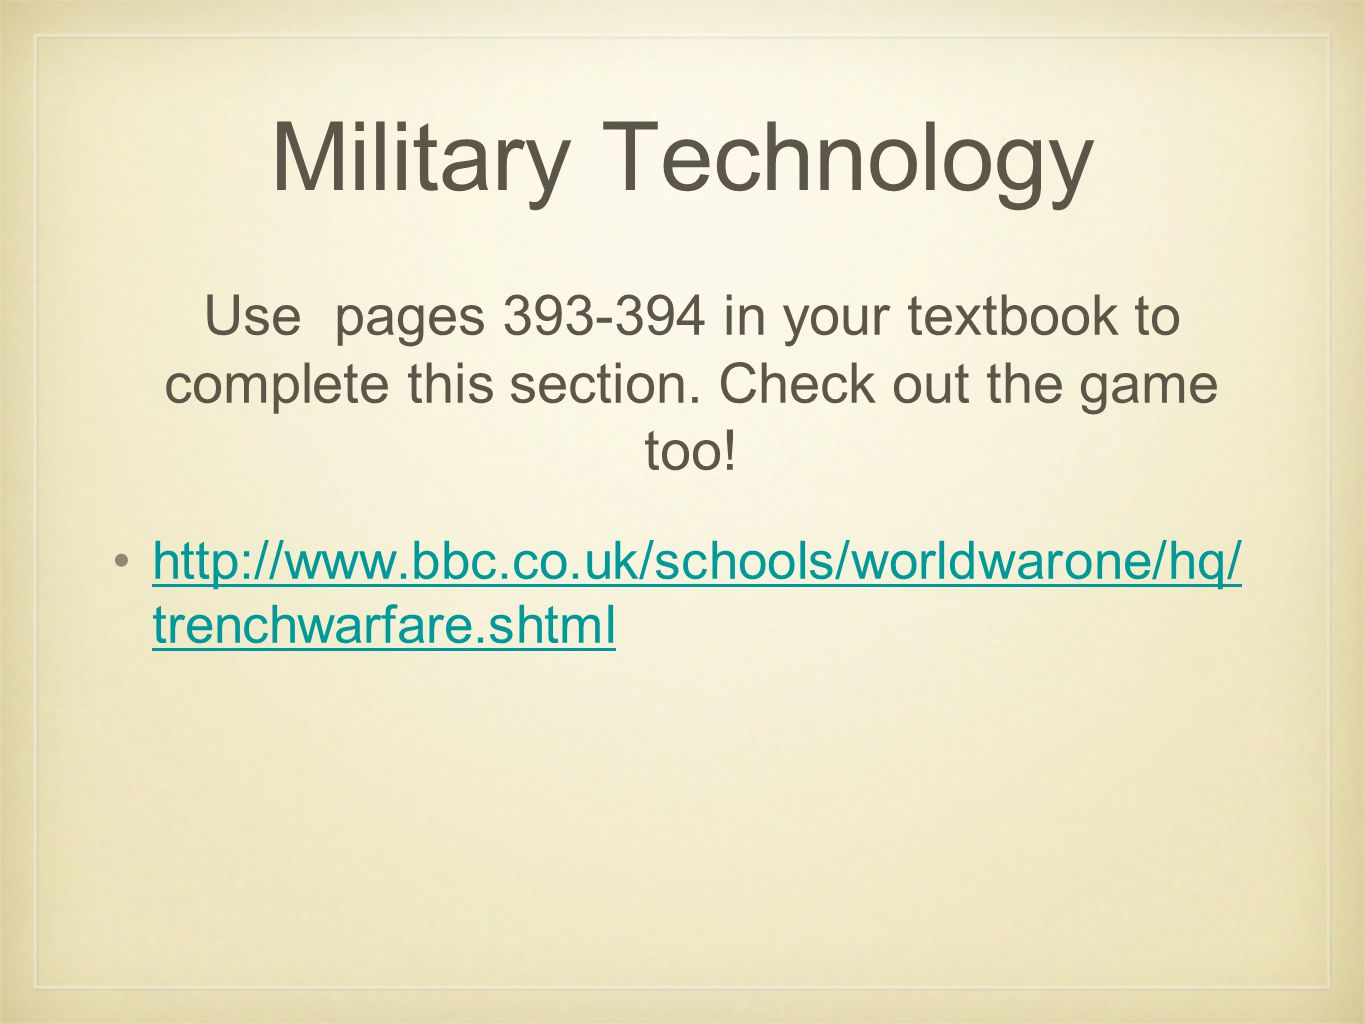 Military Technology http://www.bbc.co.uk/schools/worldwarone/hq/ trenchwarfare.shtmlhttp://www.bbc.co.uk/schools/worldwarone/hq/ trenchwarfare.shtml Use pages 393-394 in your textbook to complete this section.